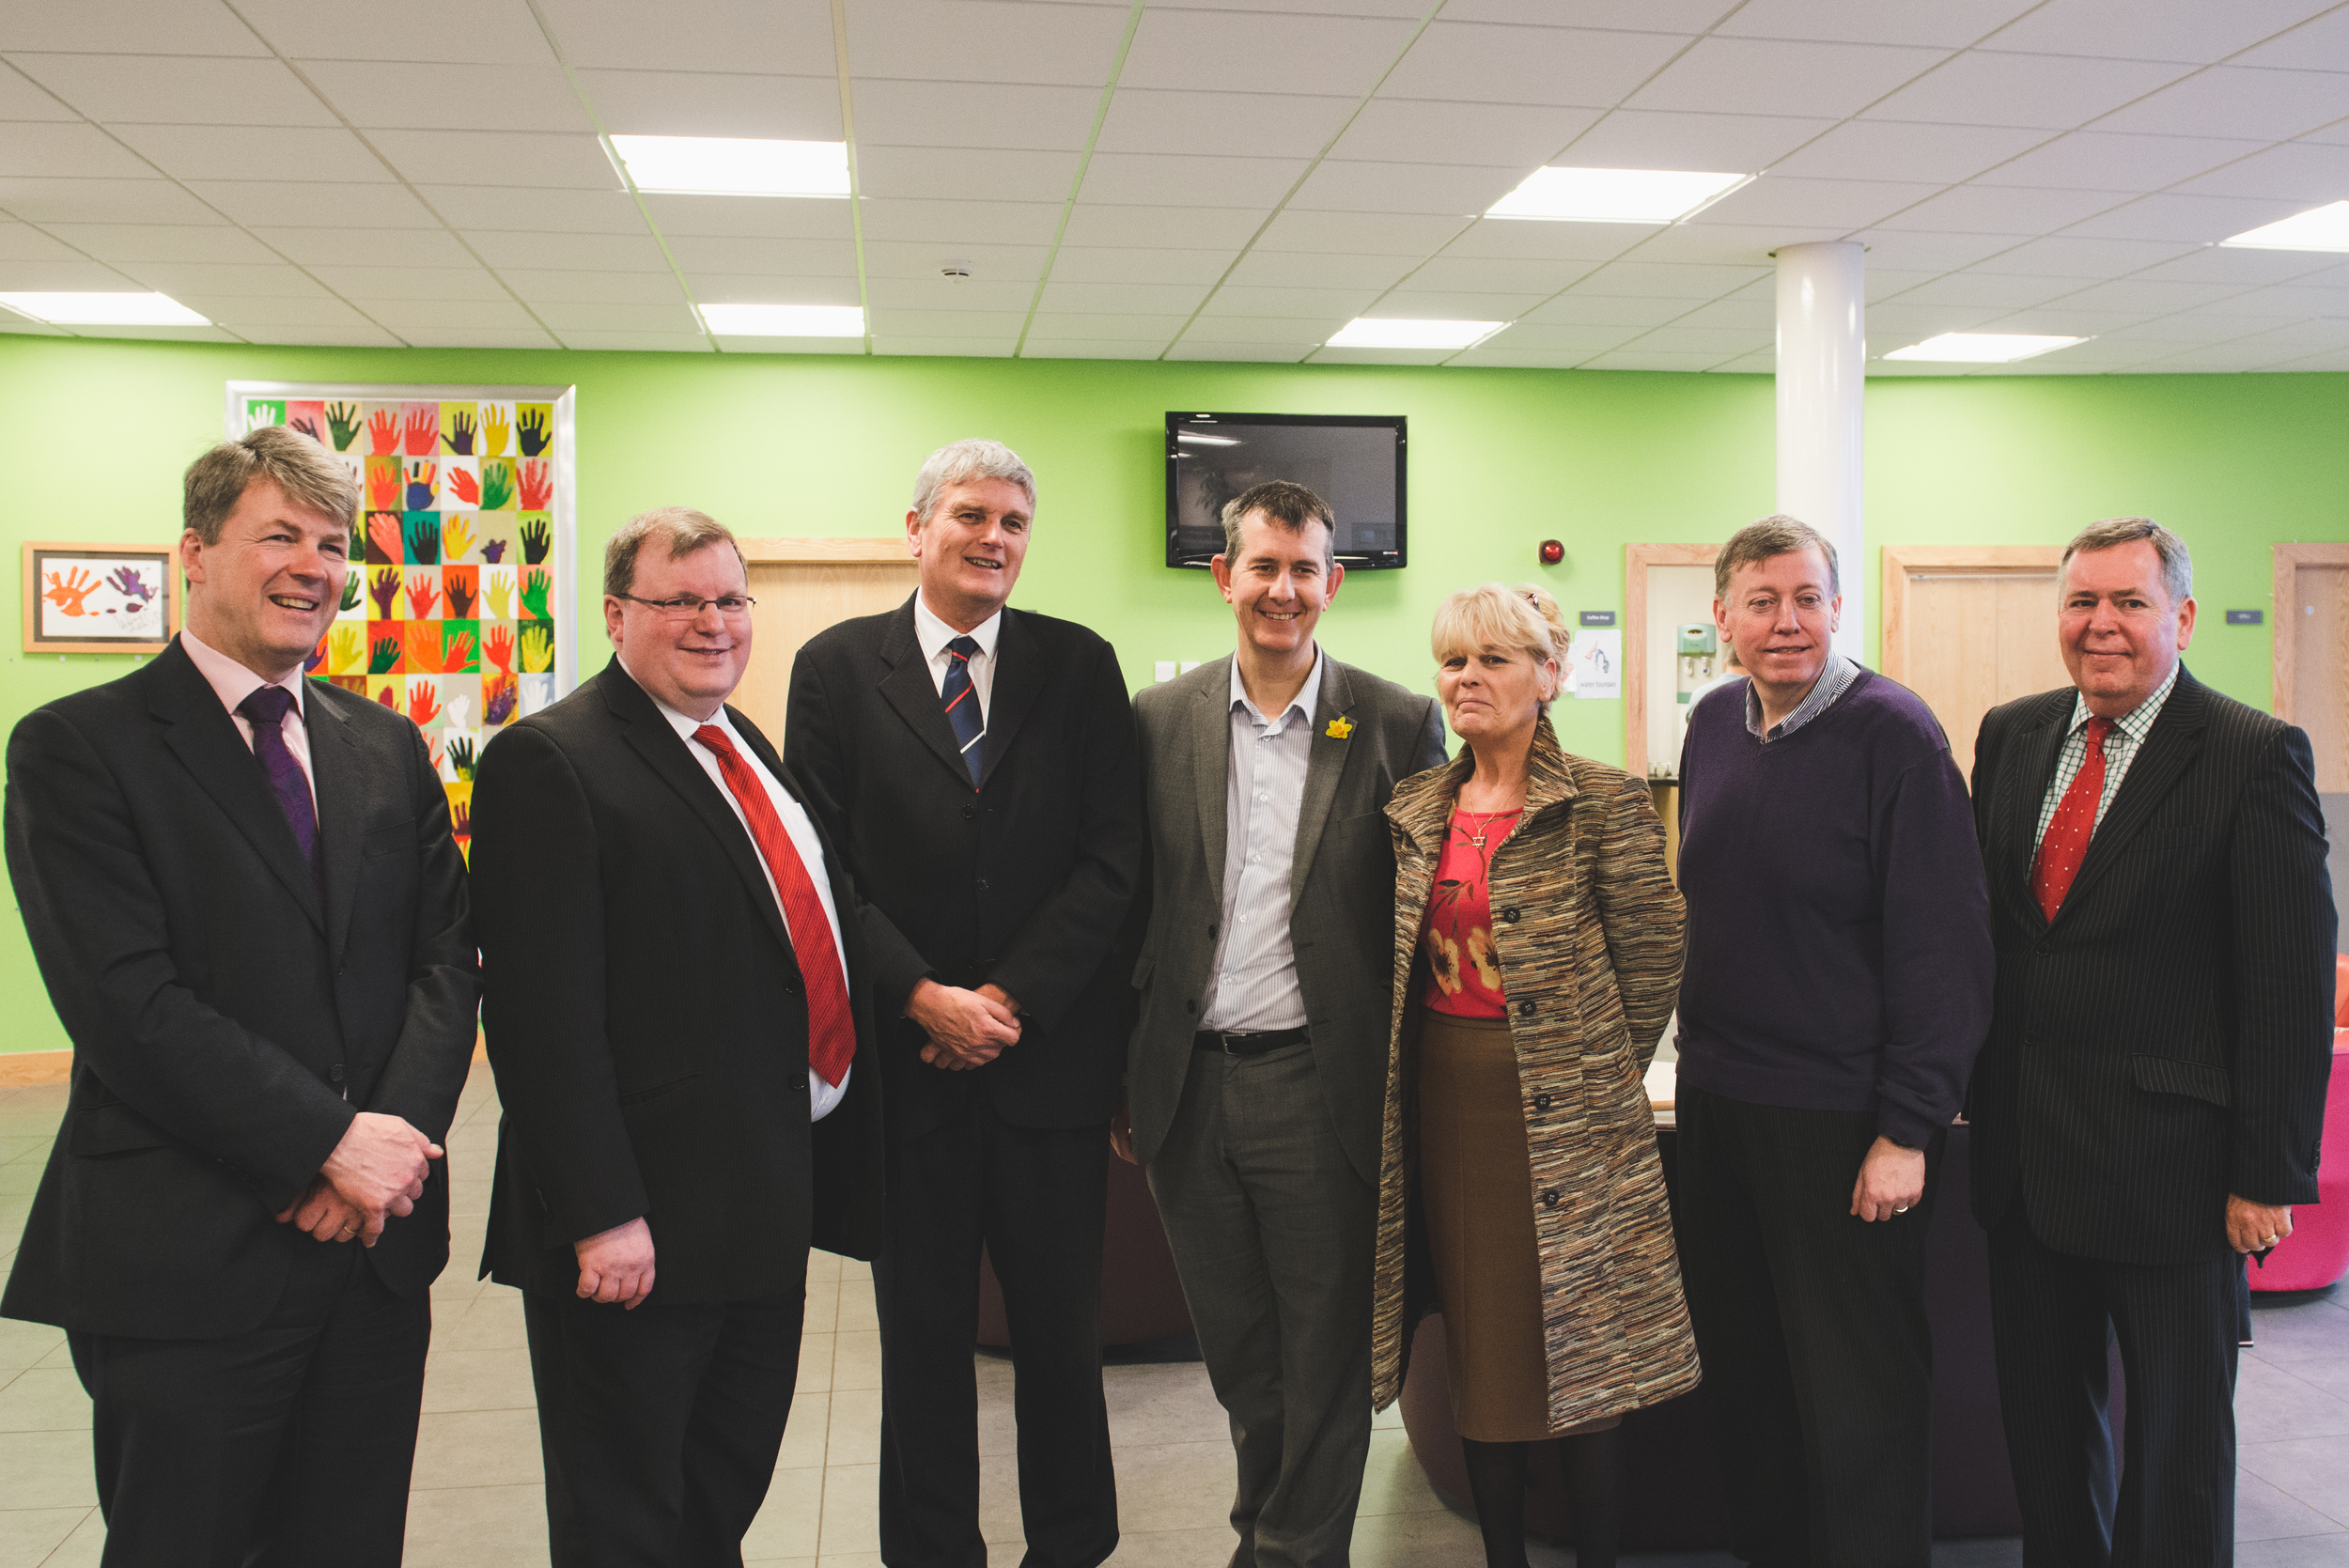 Hugh McCaugheyChief Executive of theSouth Eastern HSC Trust, Jonathon Craig MLA, Health Minister Jim Wells, Edwin Poots MLA, Anne Blake Chairperson of The Lisburn Carers Forum on Learning Disability, Lisburn Councillor Paul Porter andColm McKennaChairman of theSouth Eastern HSC Trust